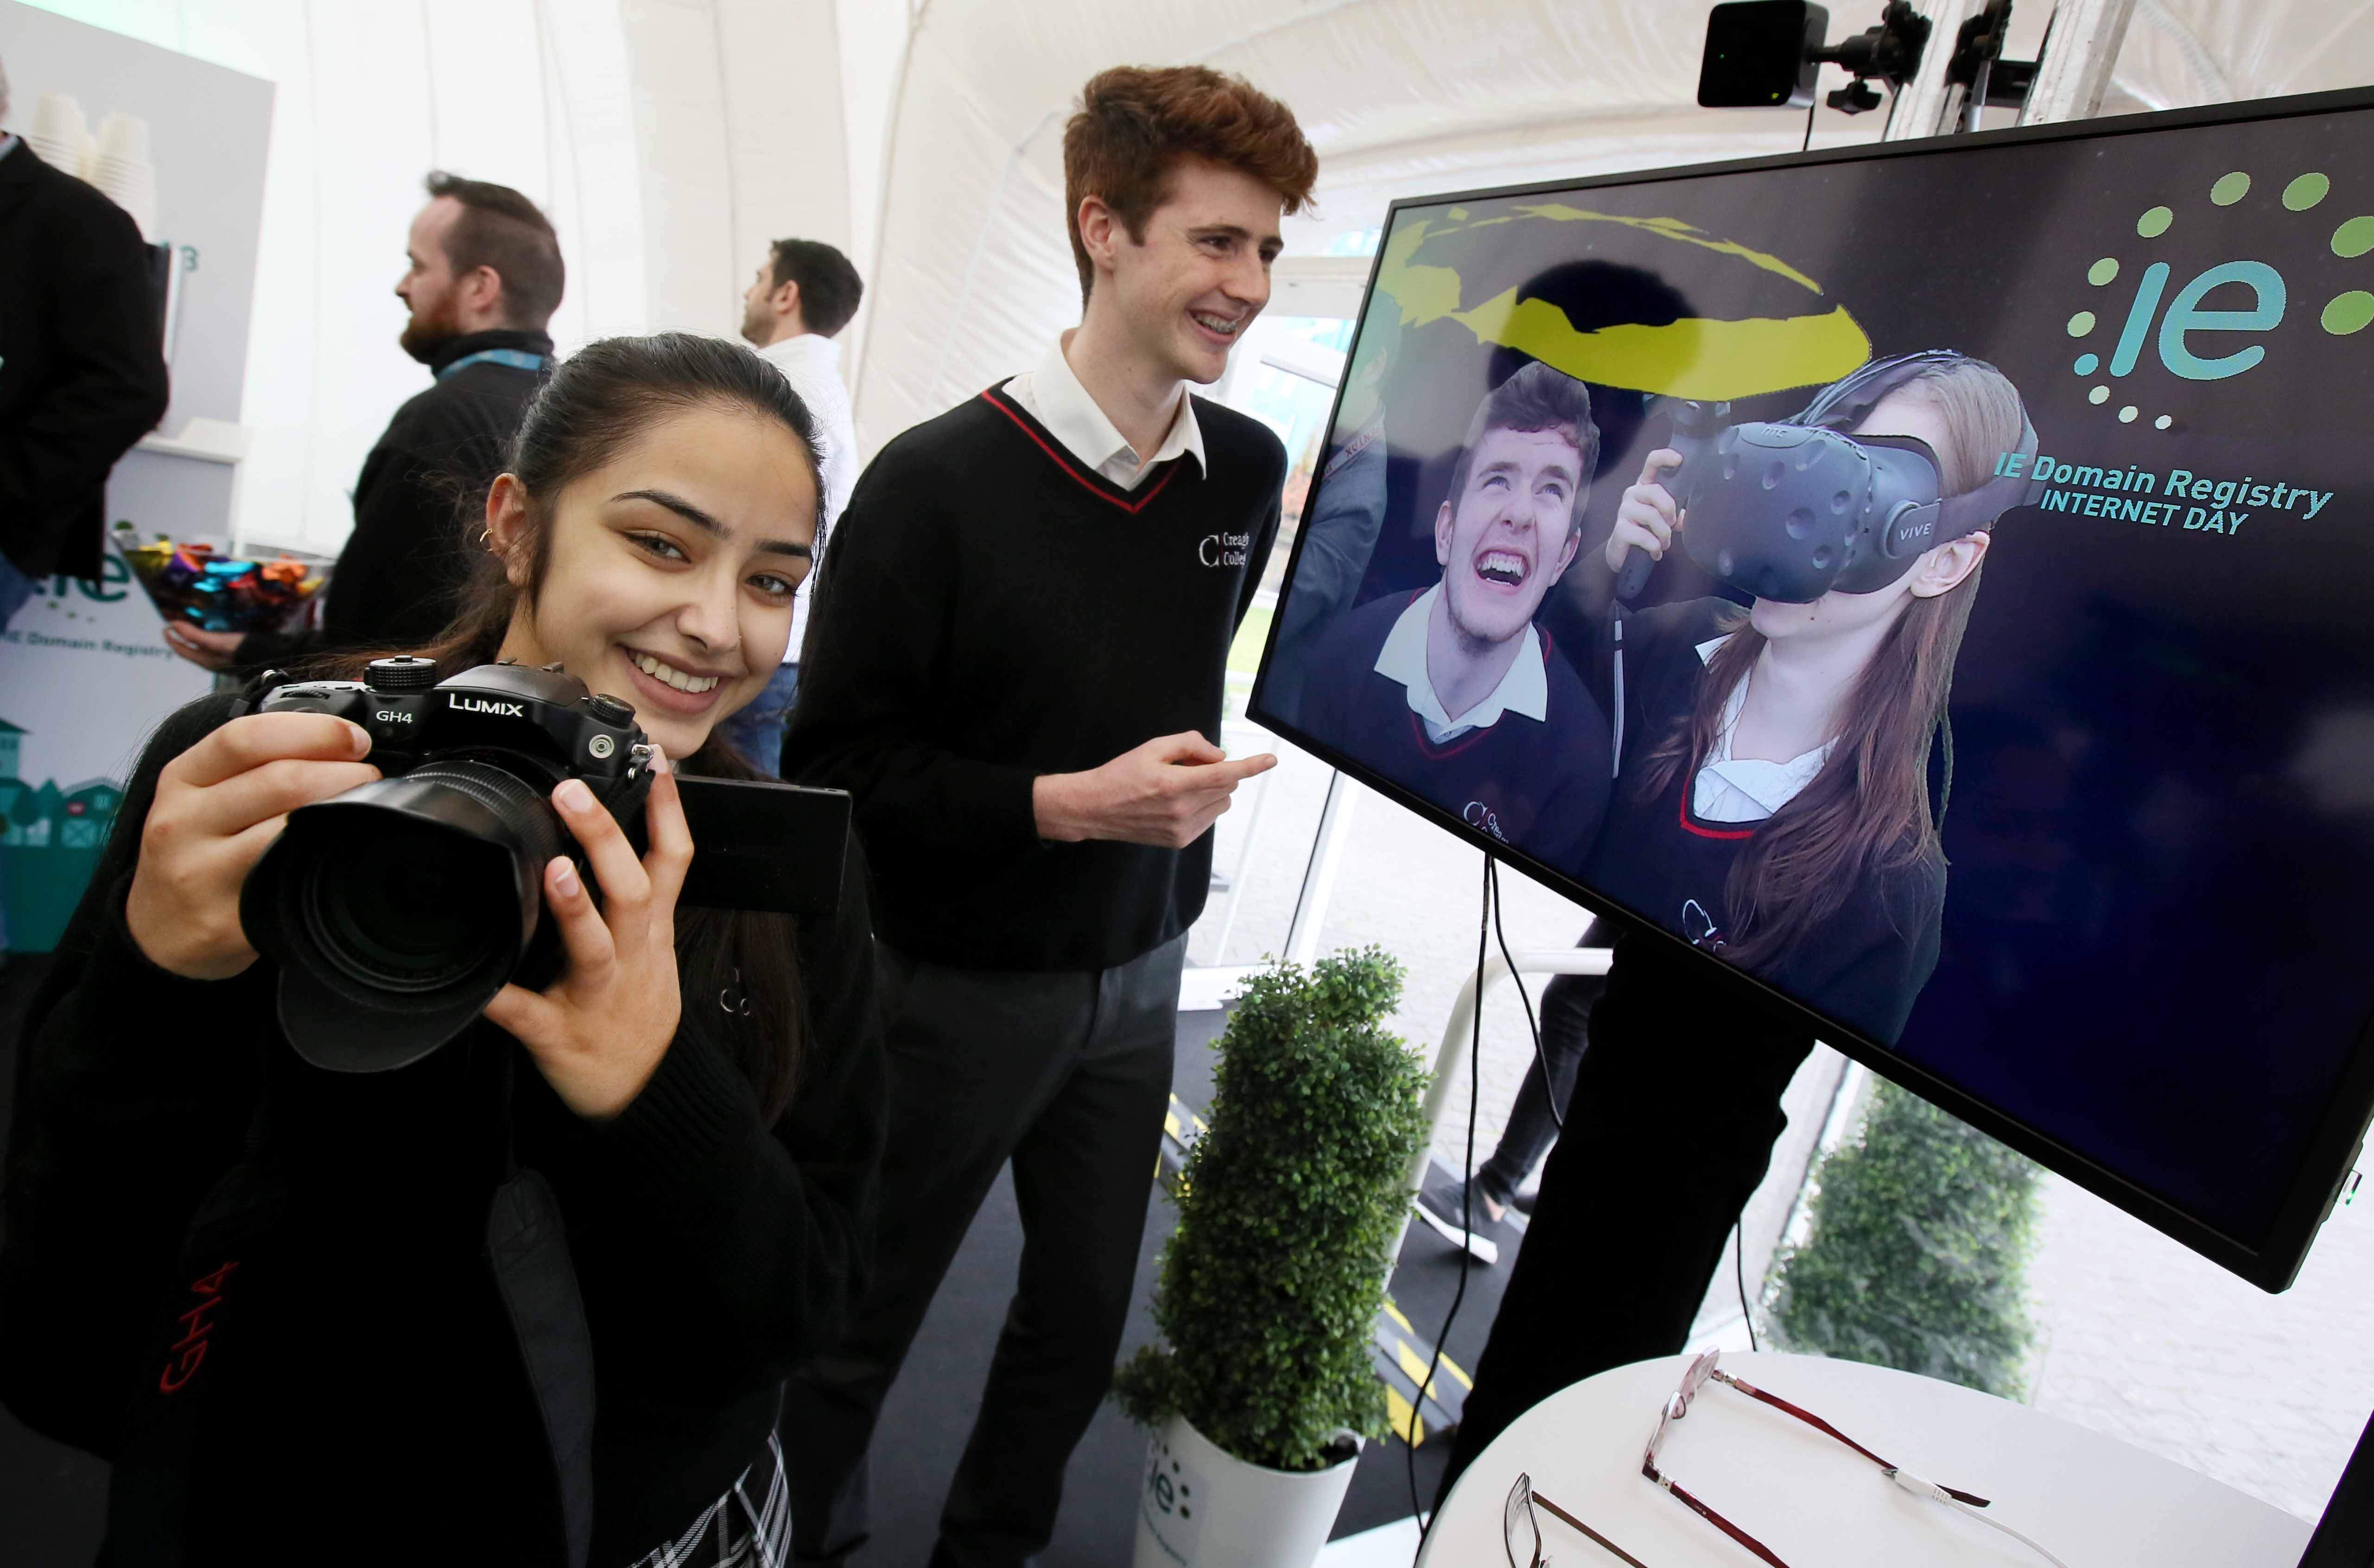 Students from Creagh College check out the mixed reality experience in the IE Domain Registry Digital Dome.